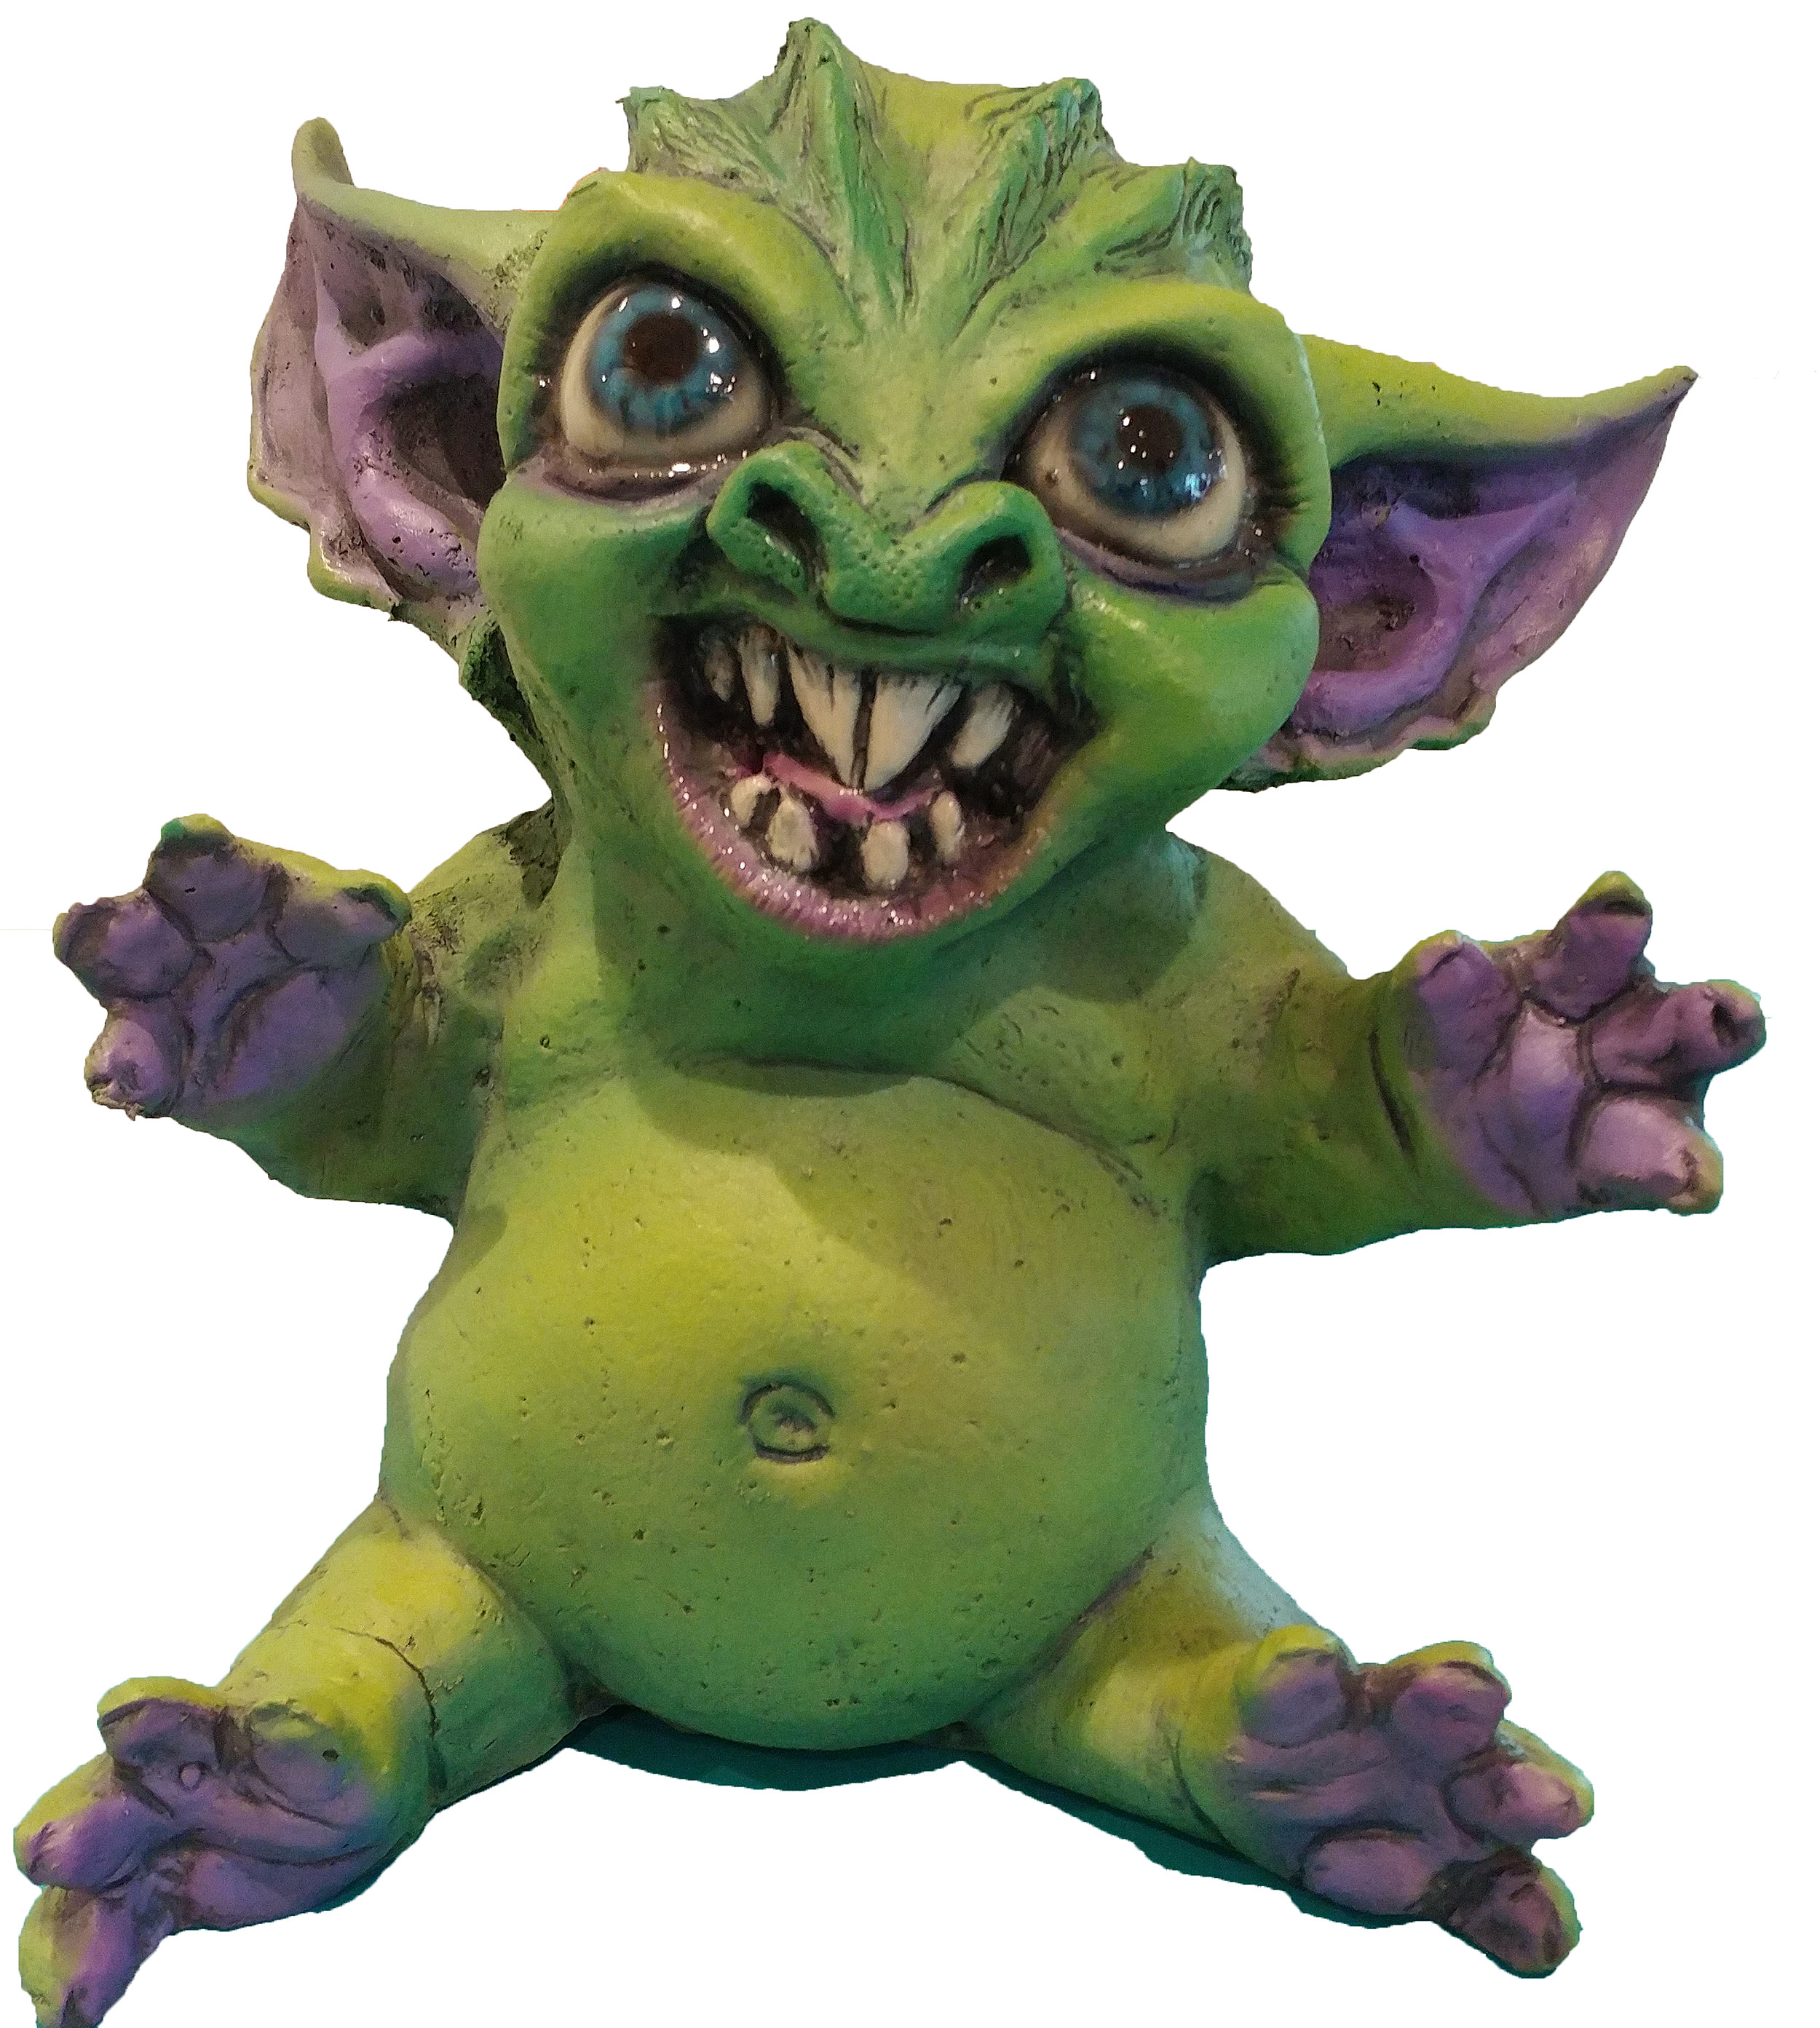 The Greeley Gremlin